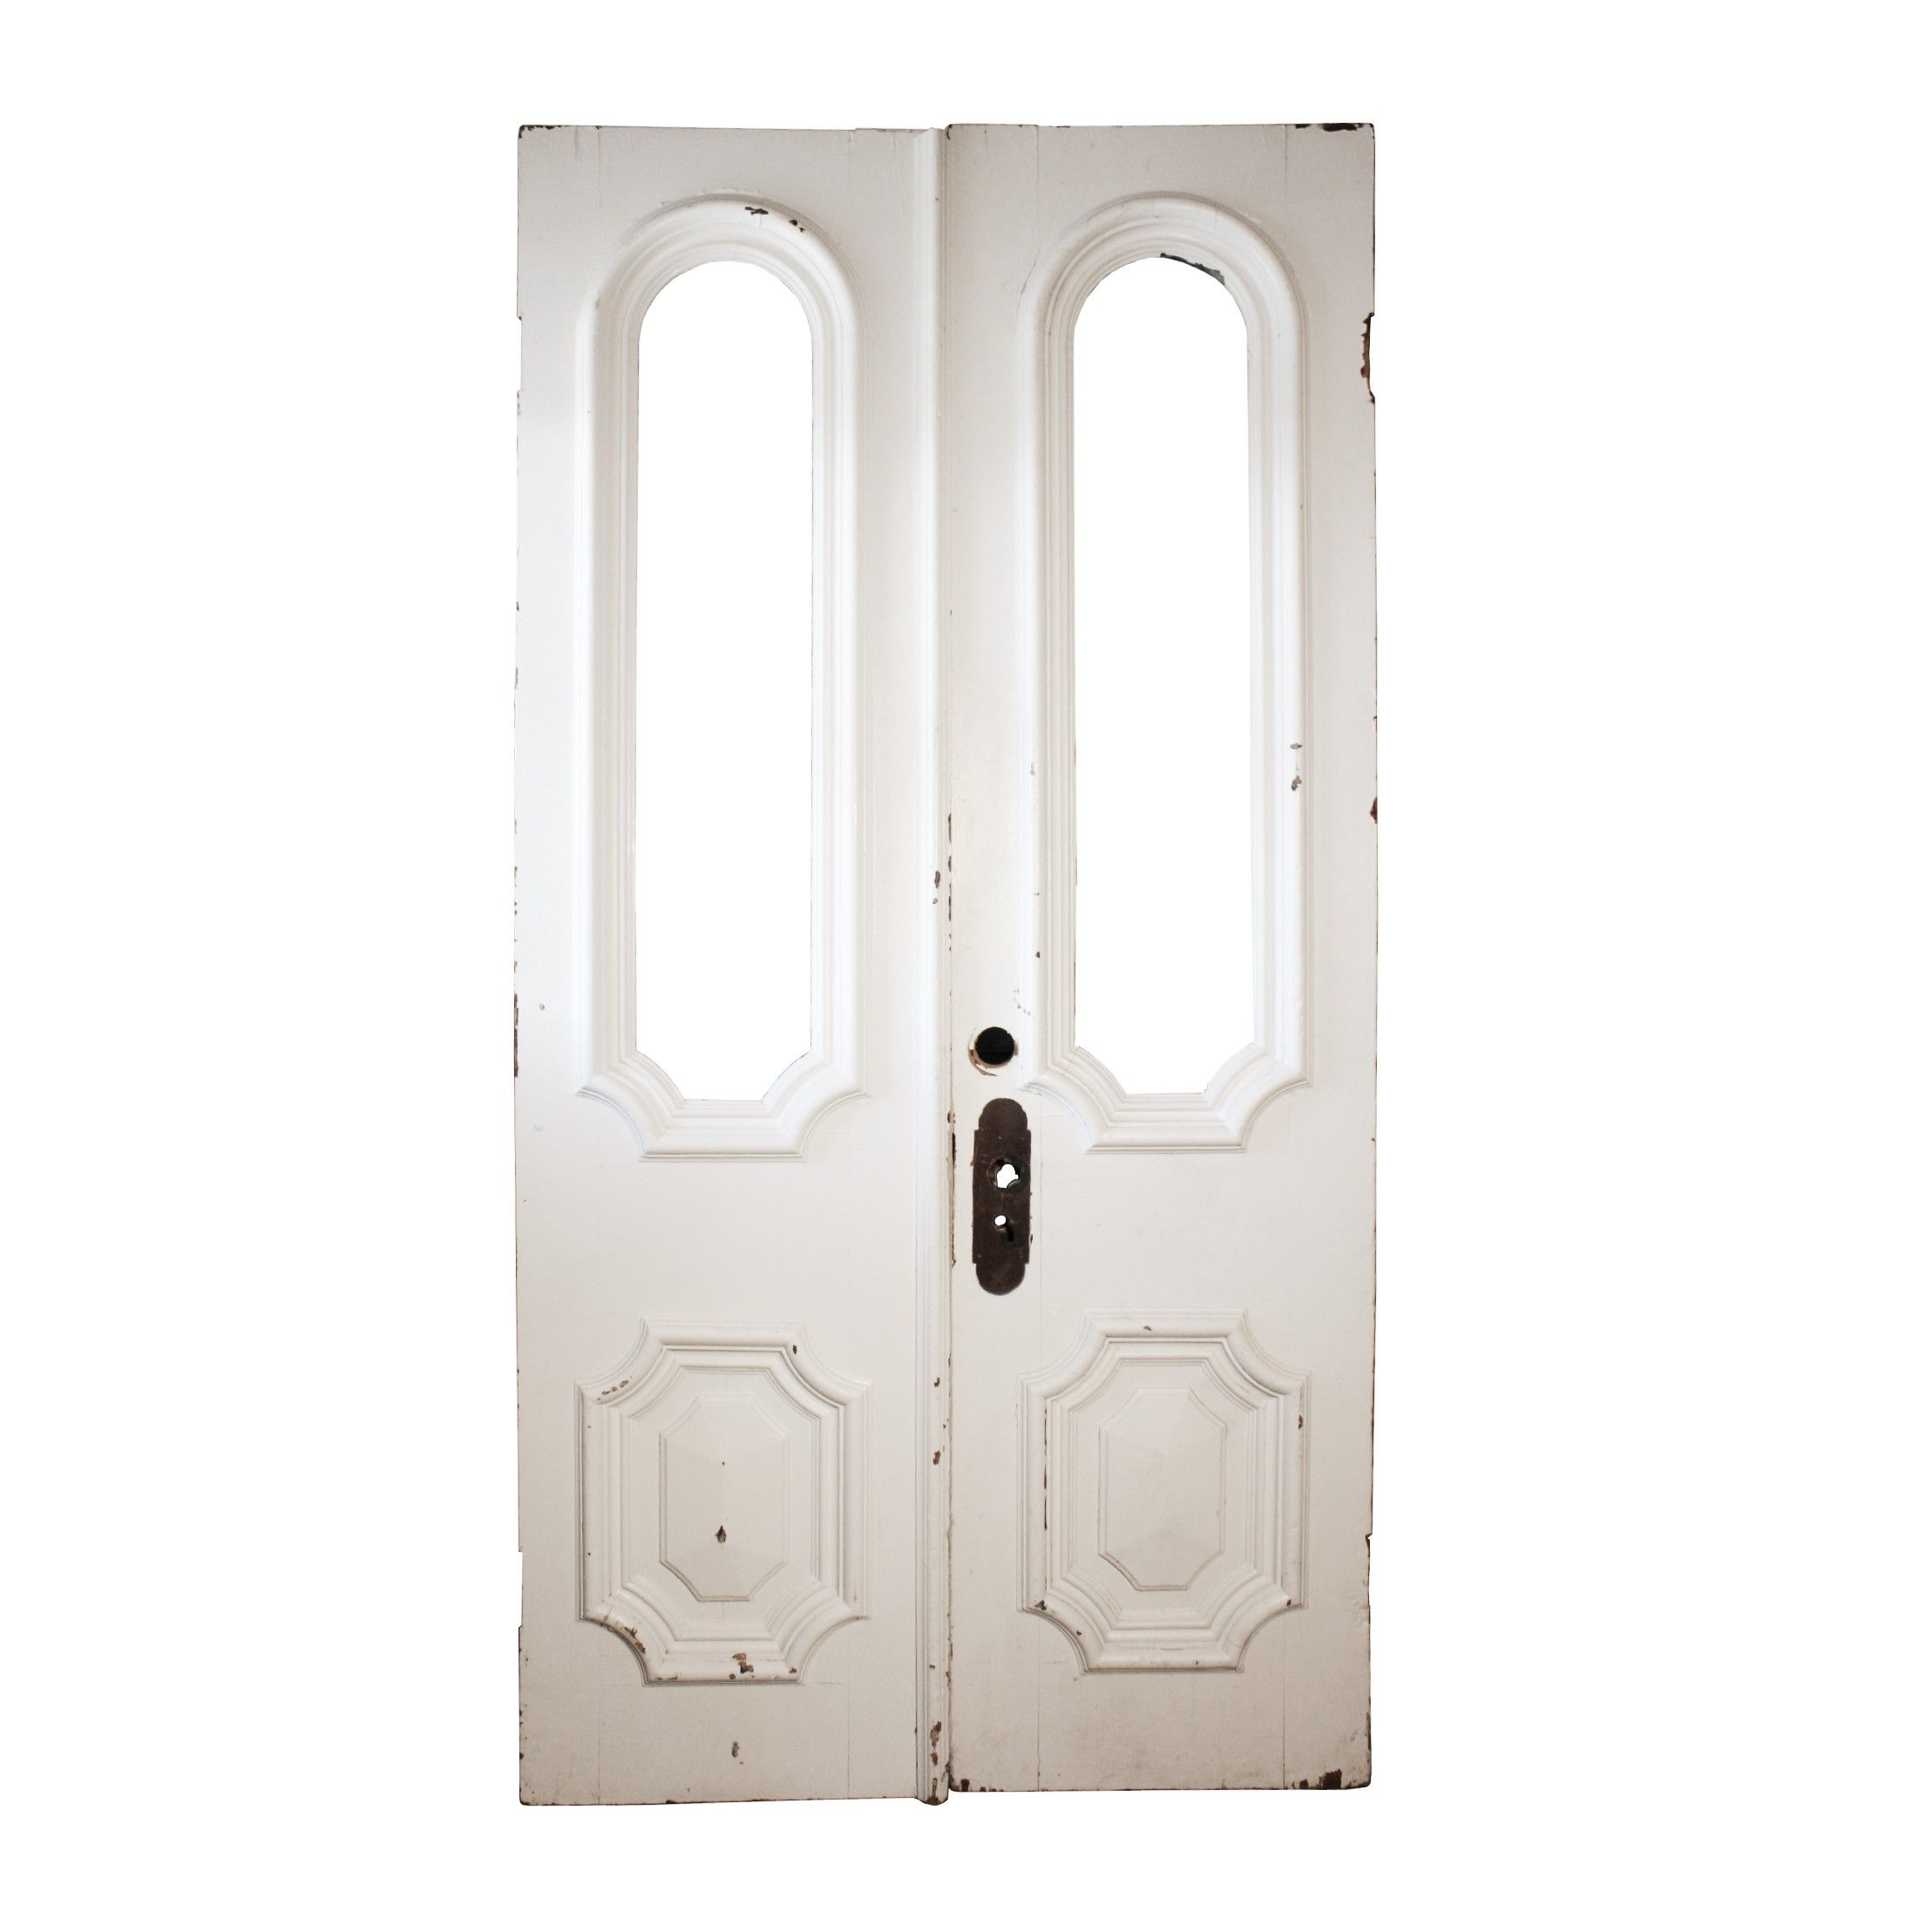 Impressive Pair of Salvaged Double Doors with Arched Lights c. 1880 - Preservation Station  sc 1 st  Pinterest & Impressive Pair of Salvaged Double Doors with Arched Lights c ...